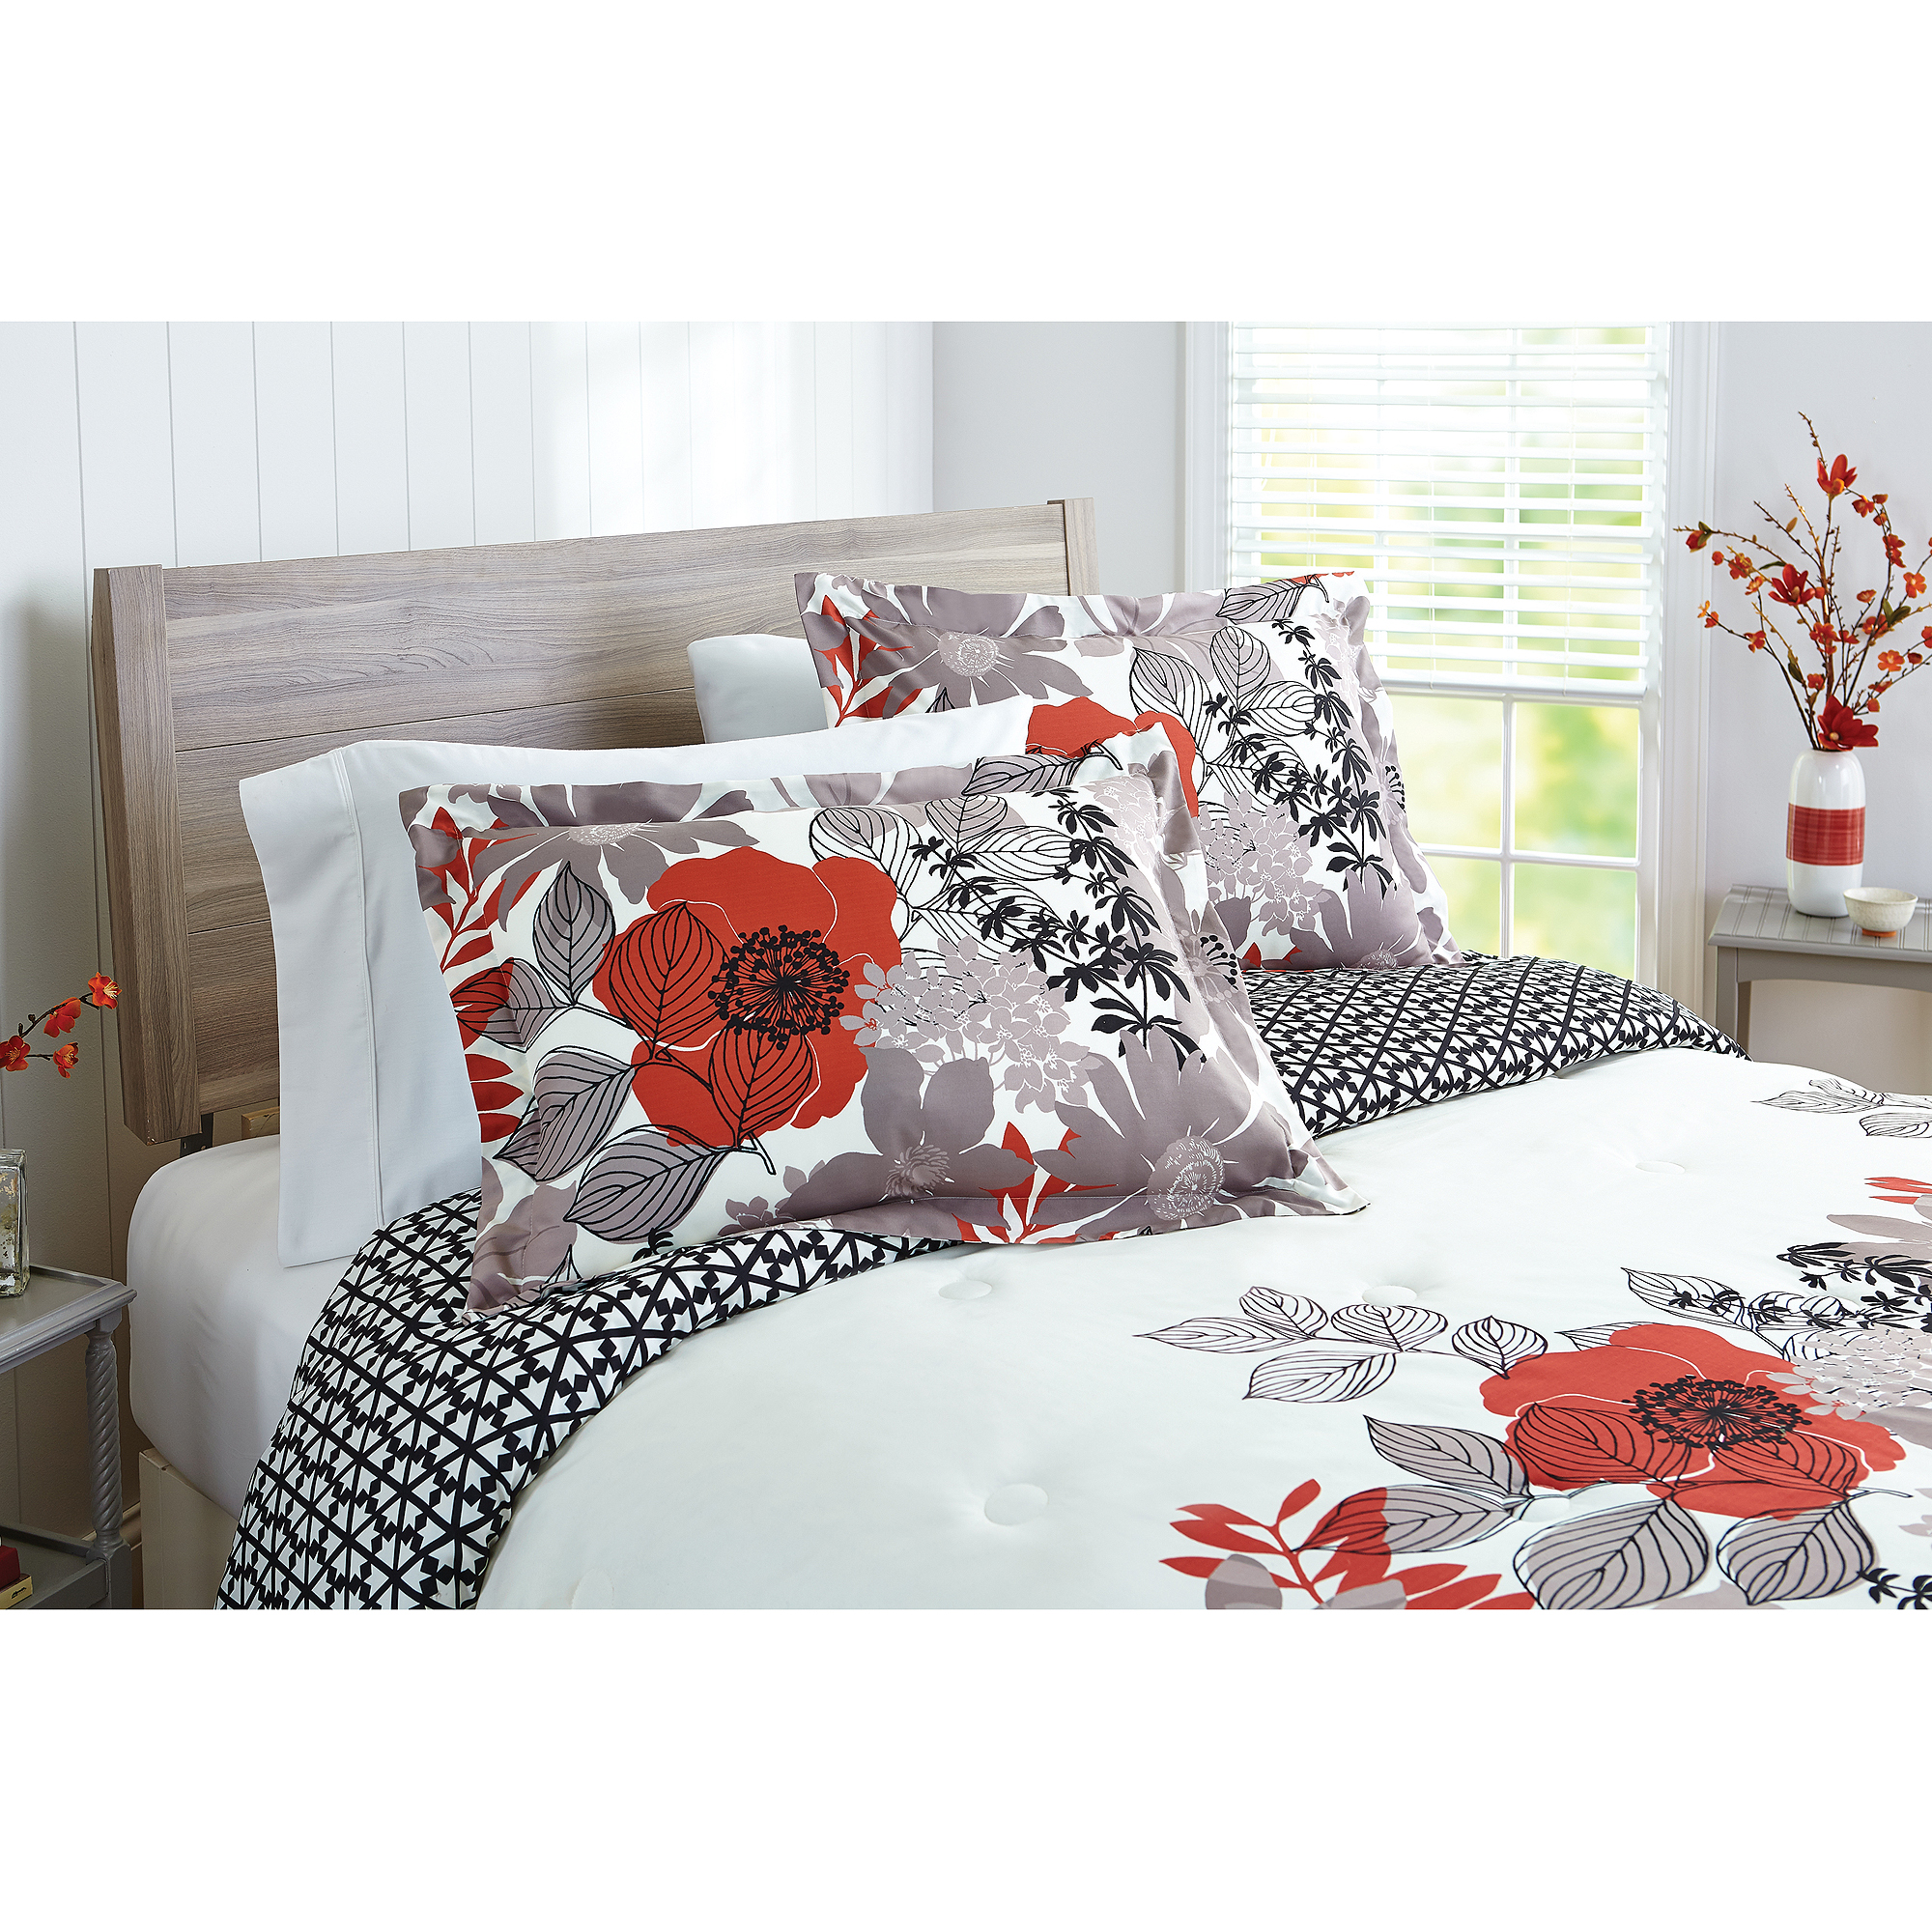 Better Homes and Gardens Floral Silhouette 5-Piece Bedding Comforter Set